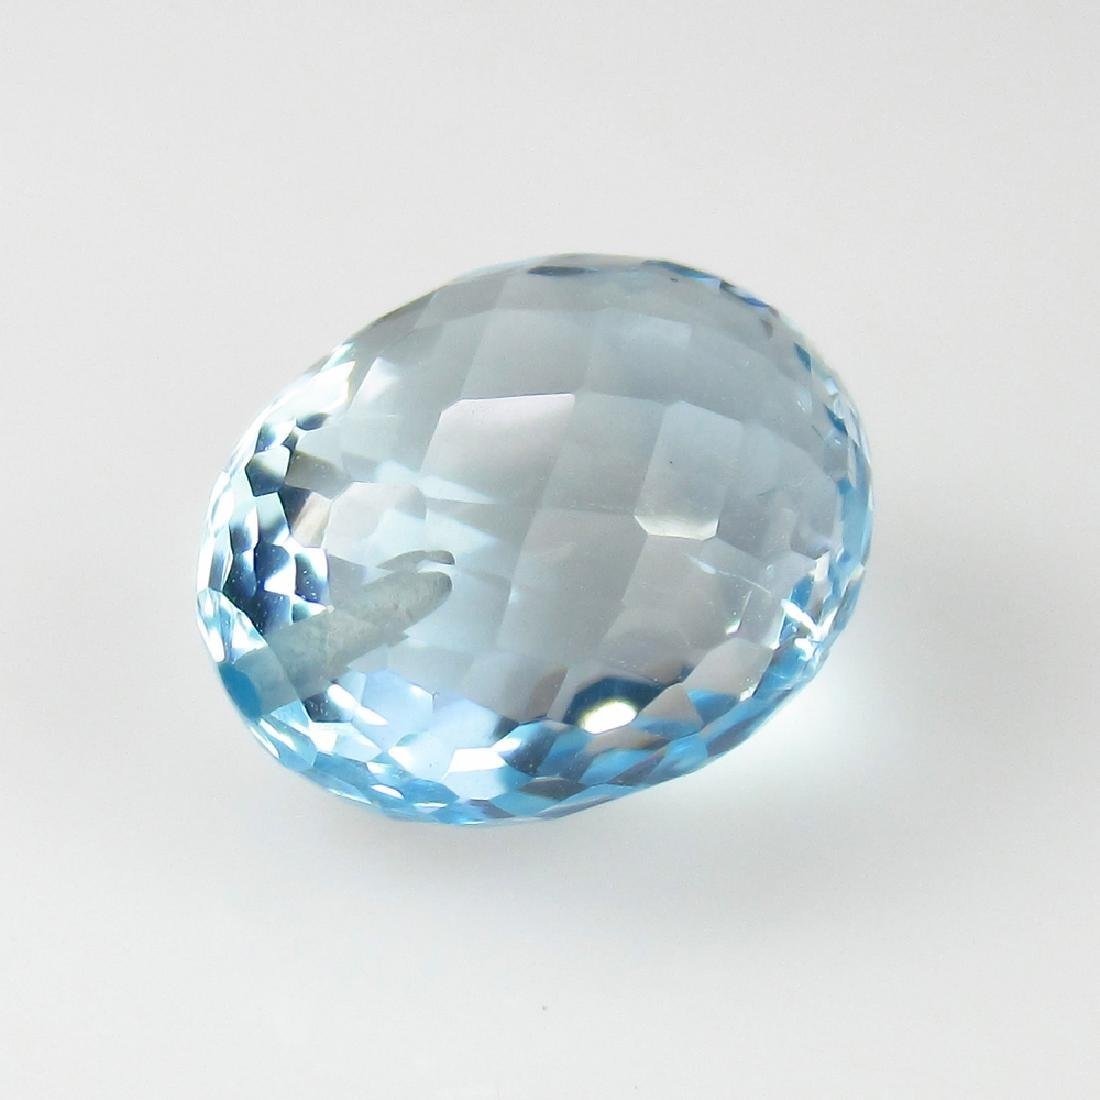 9.40 Ct Genuine Oval Checker Board cut Aquamarine Oval